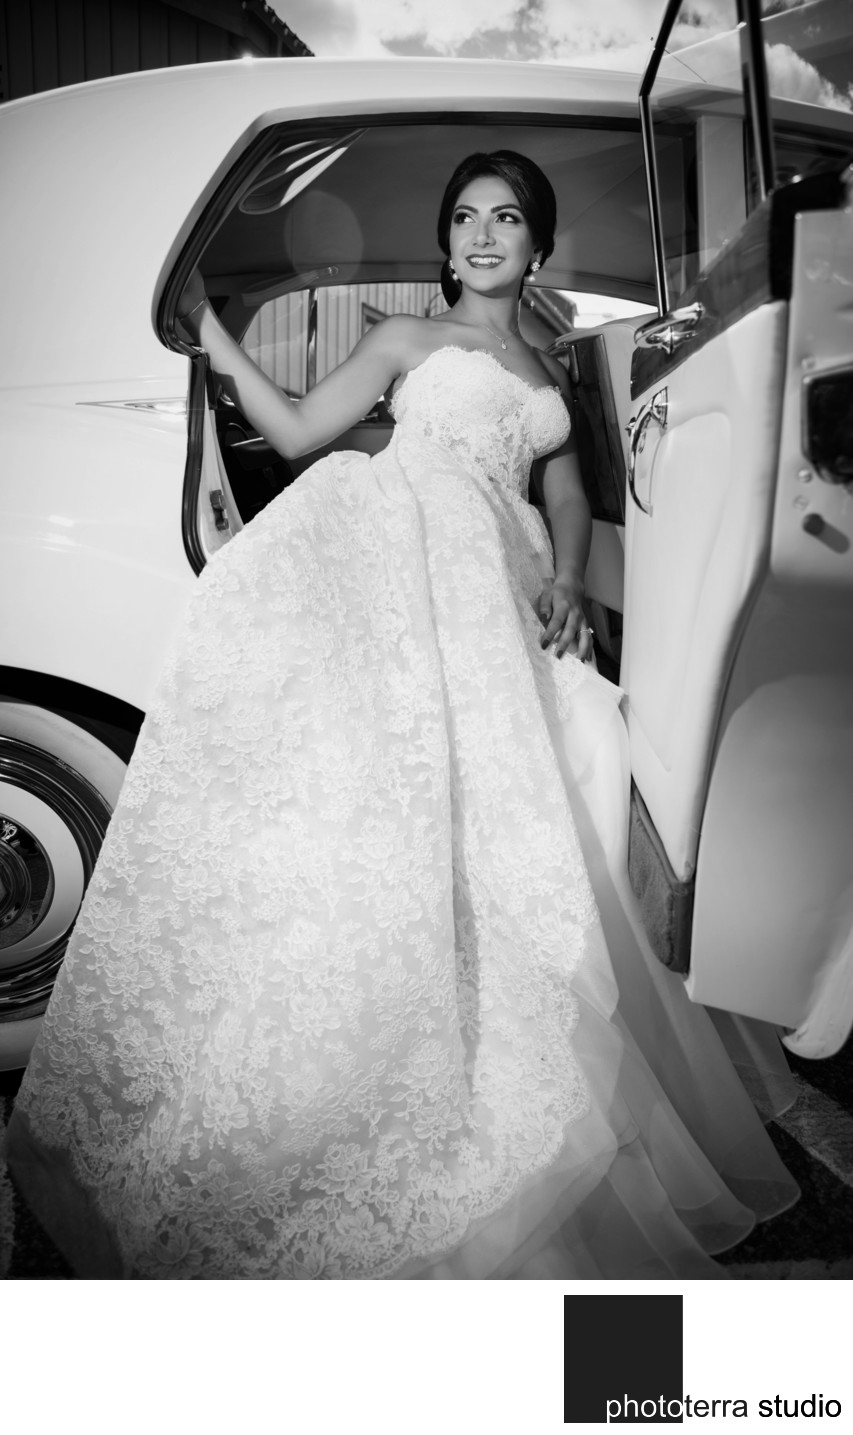 Bride in a Car from a New Perspective